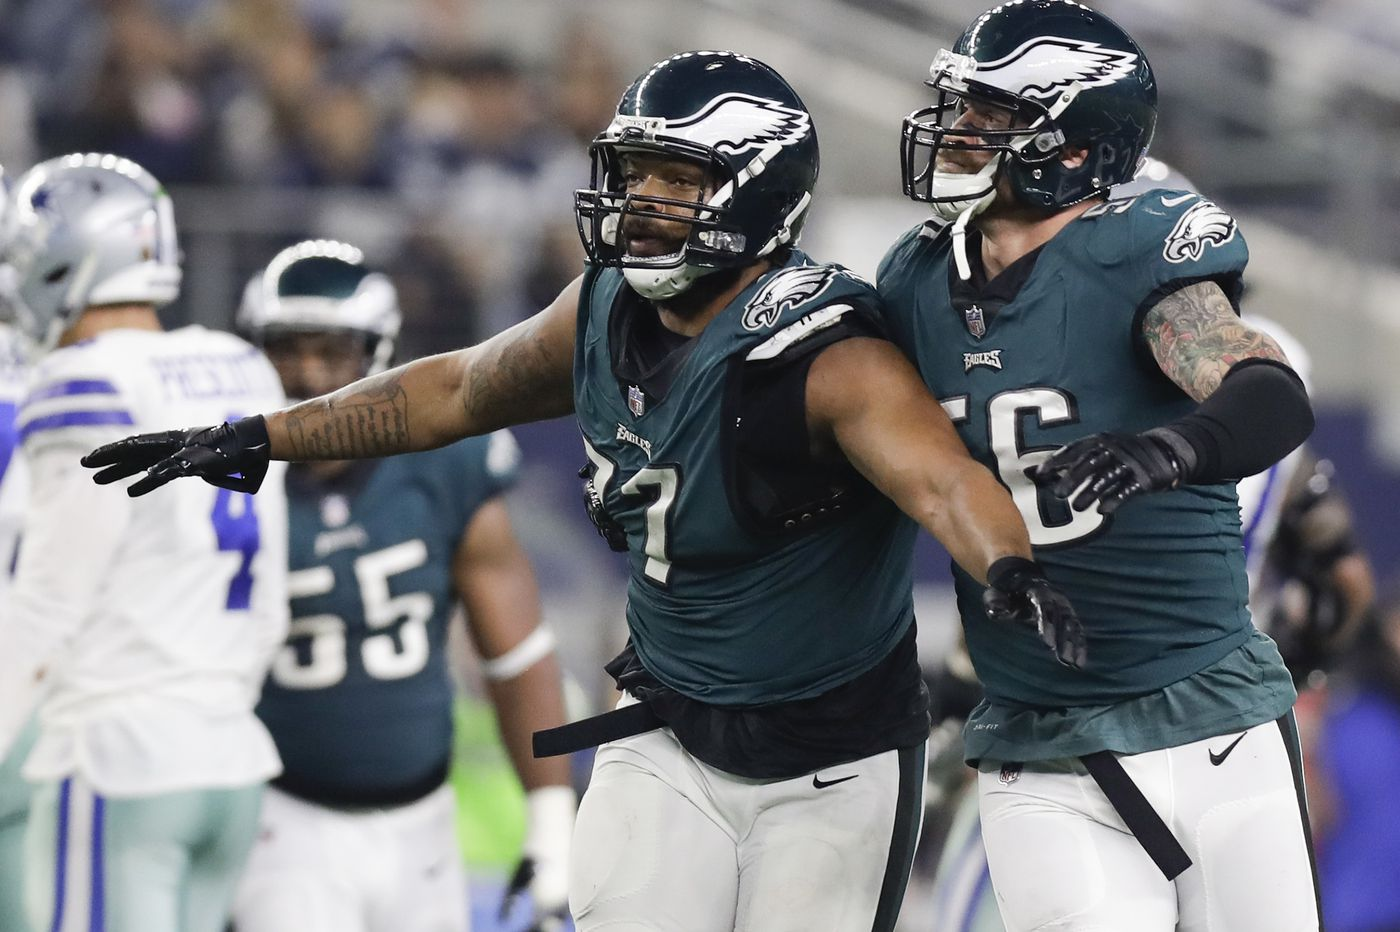 Michael Bennett needed time to adjust to the Eagles. Since then, he's had one of his best NFL seasons